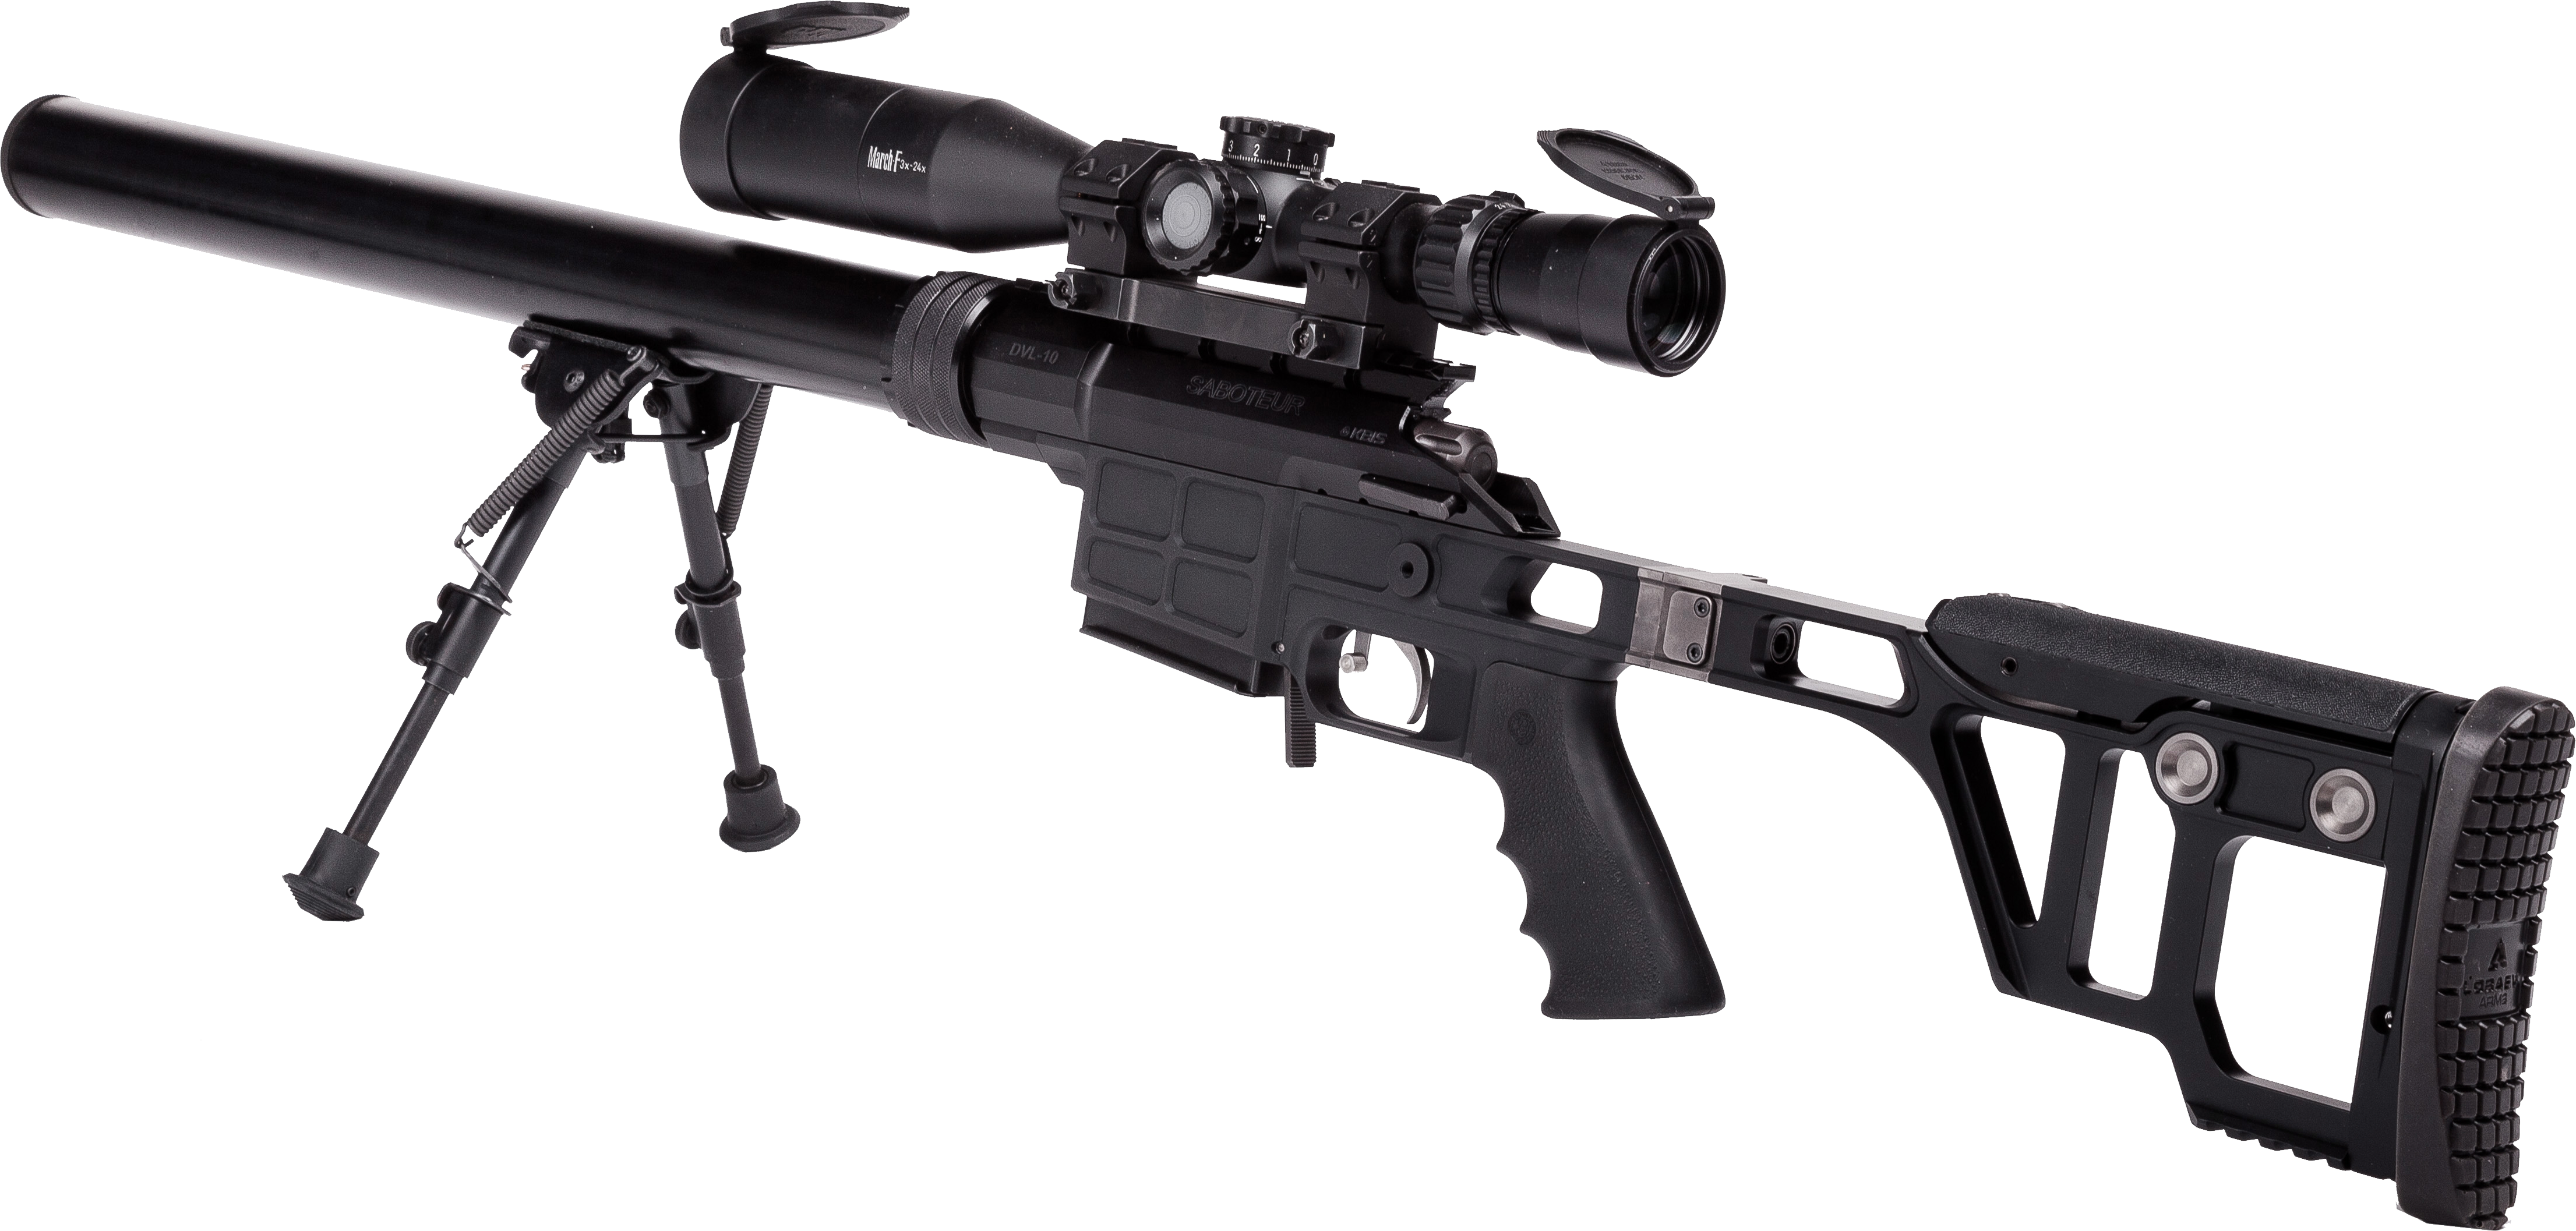 Sniper png. Rifle images free download